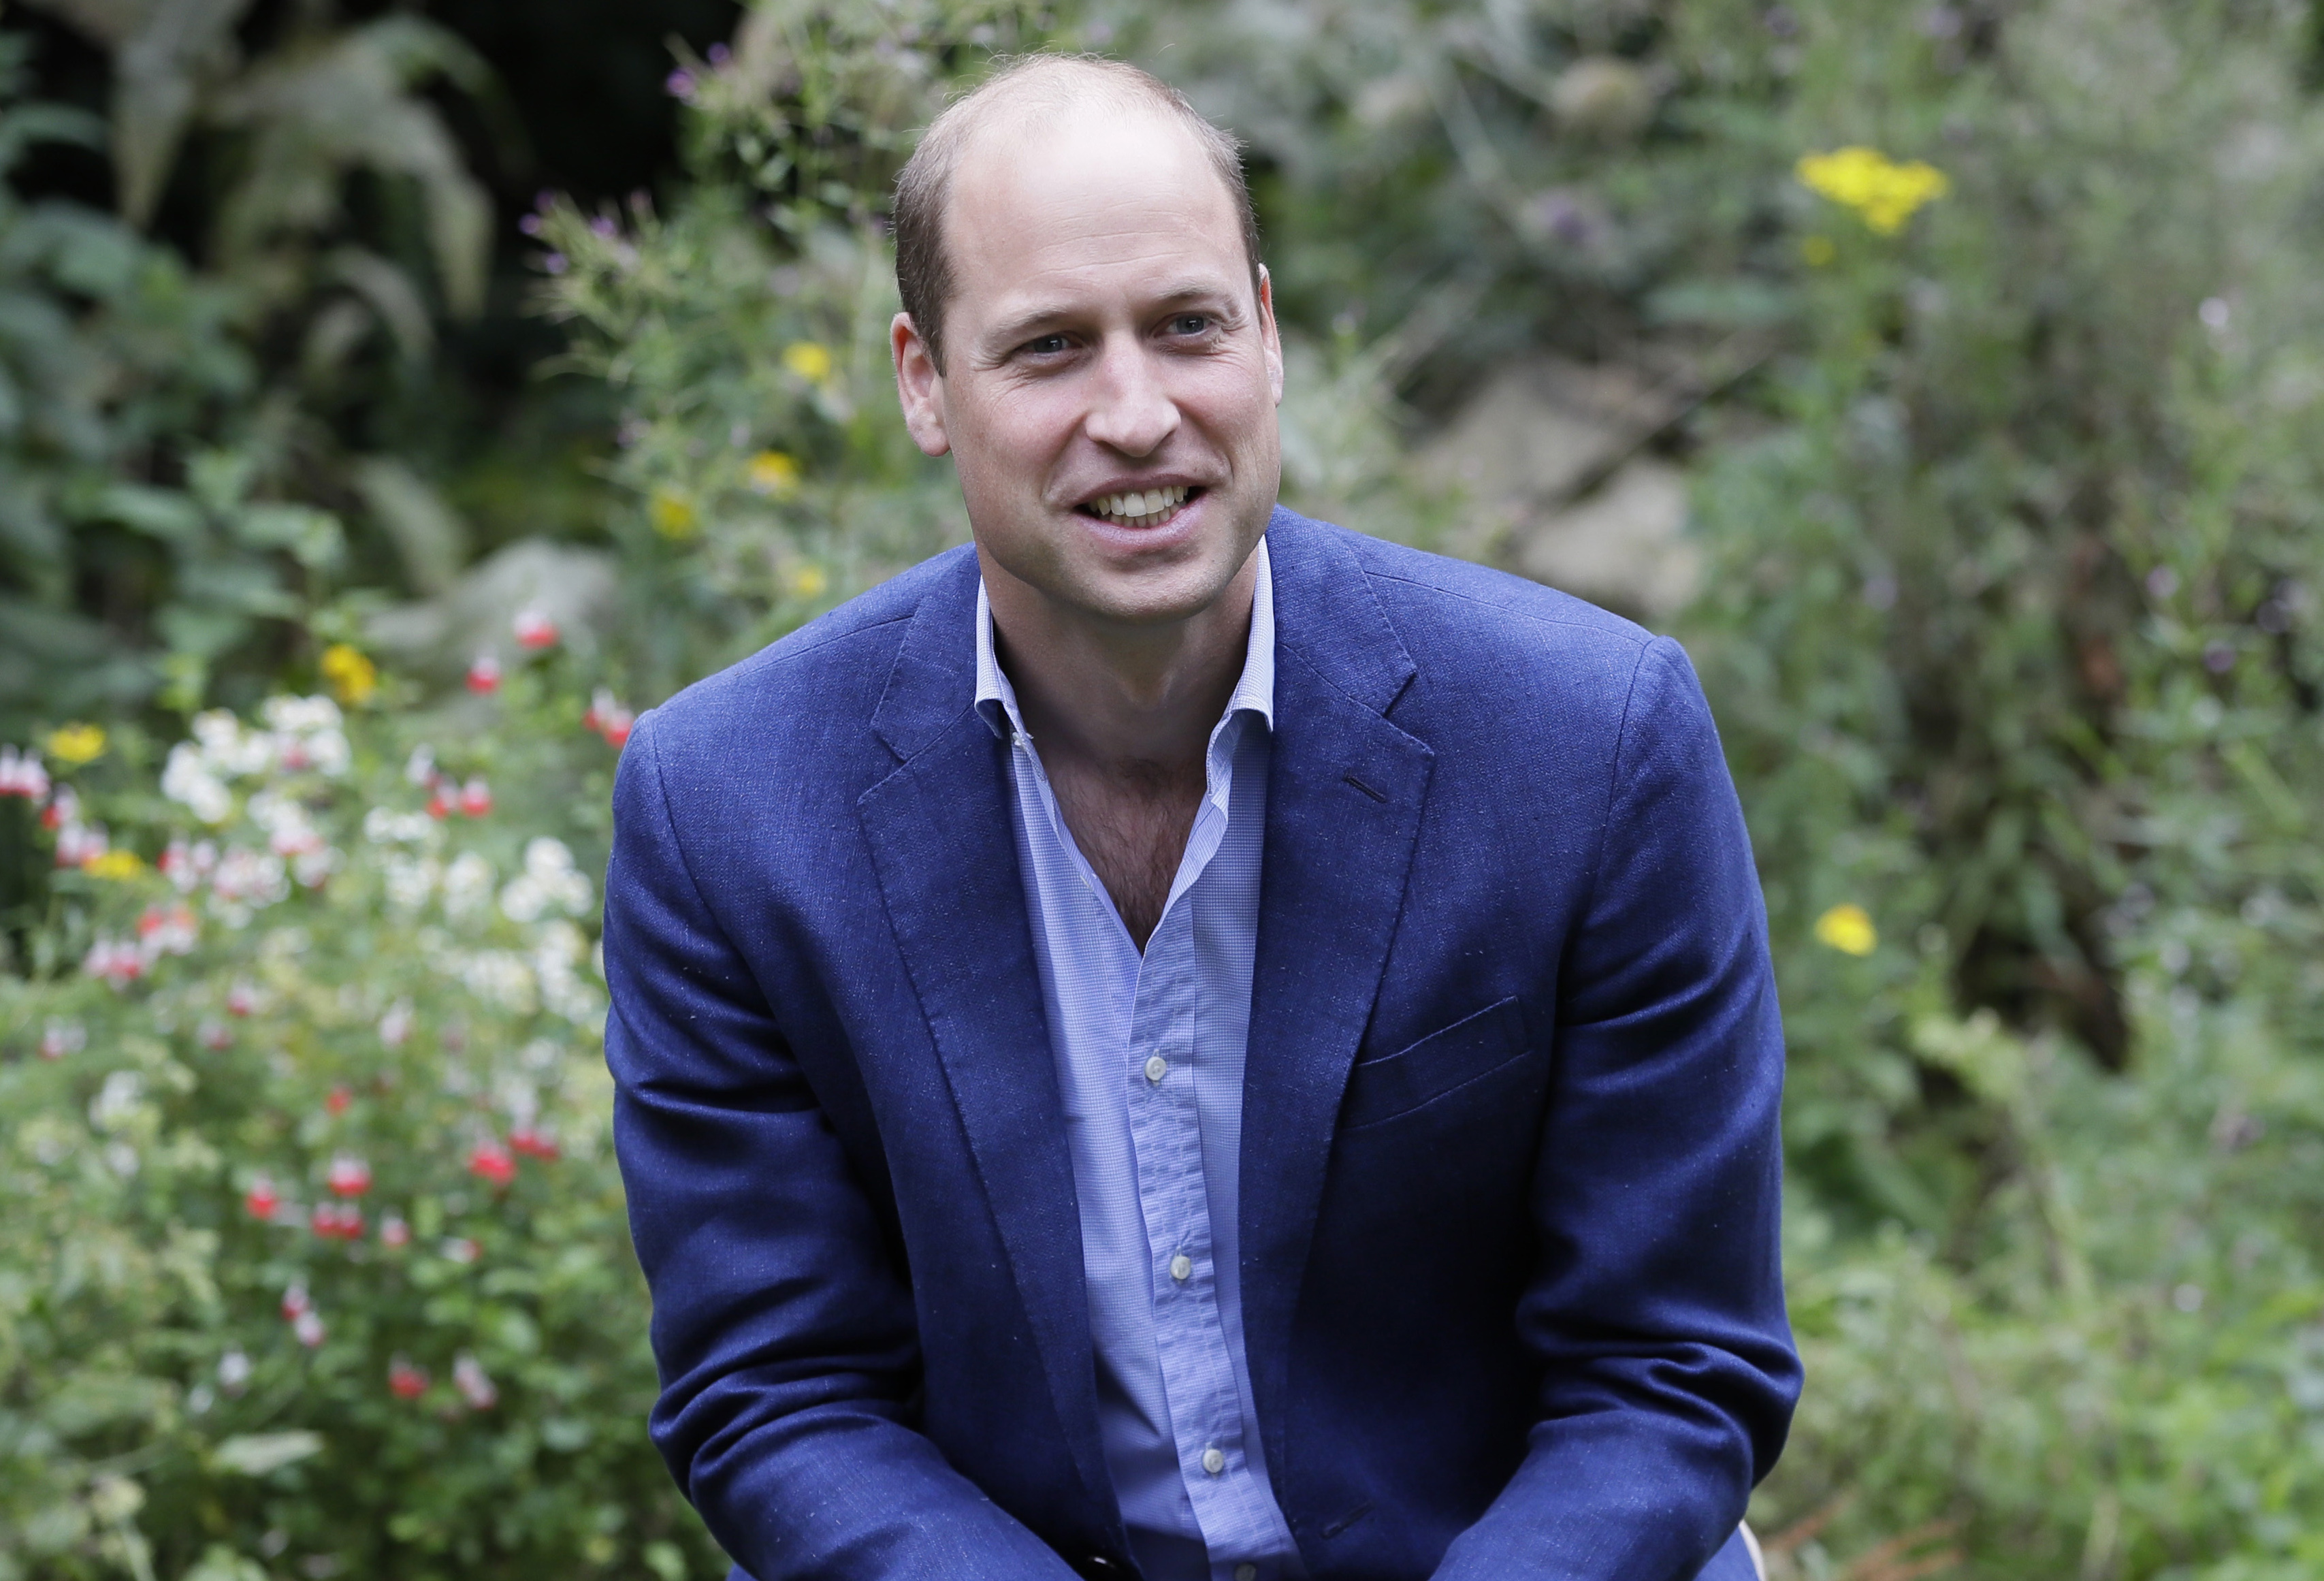 Britain's Prince William has criticized some of the world's richest men for using their wealth to fund a new space race and space tourism, and called on the world's great minds to fix the planet first.